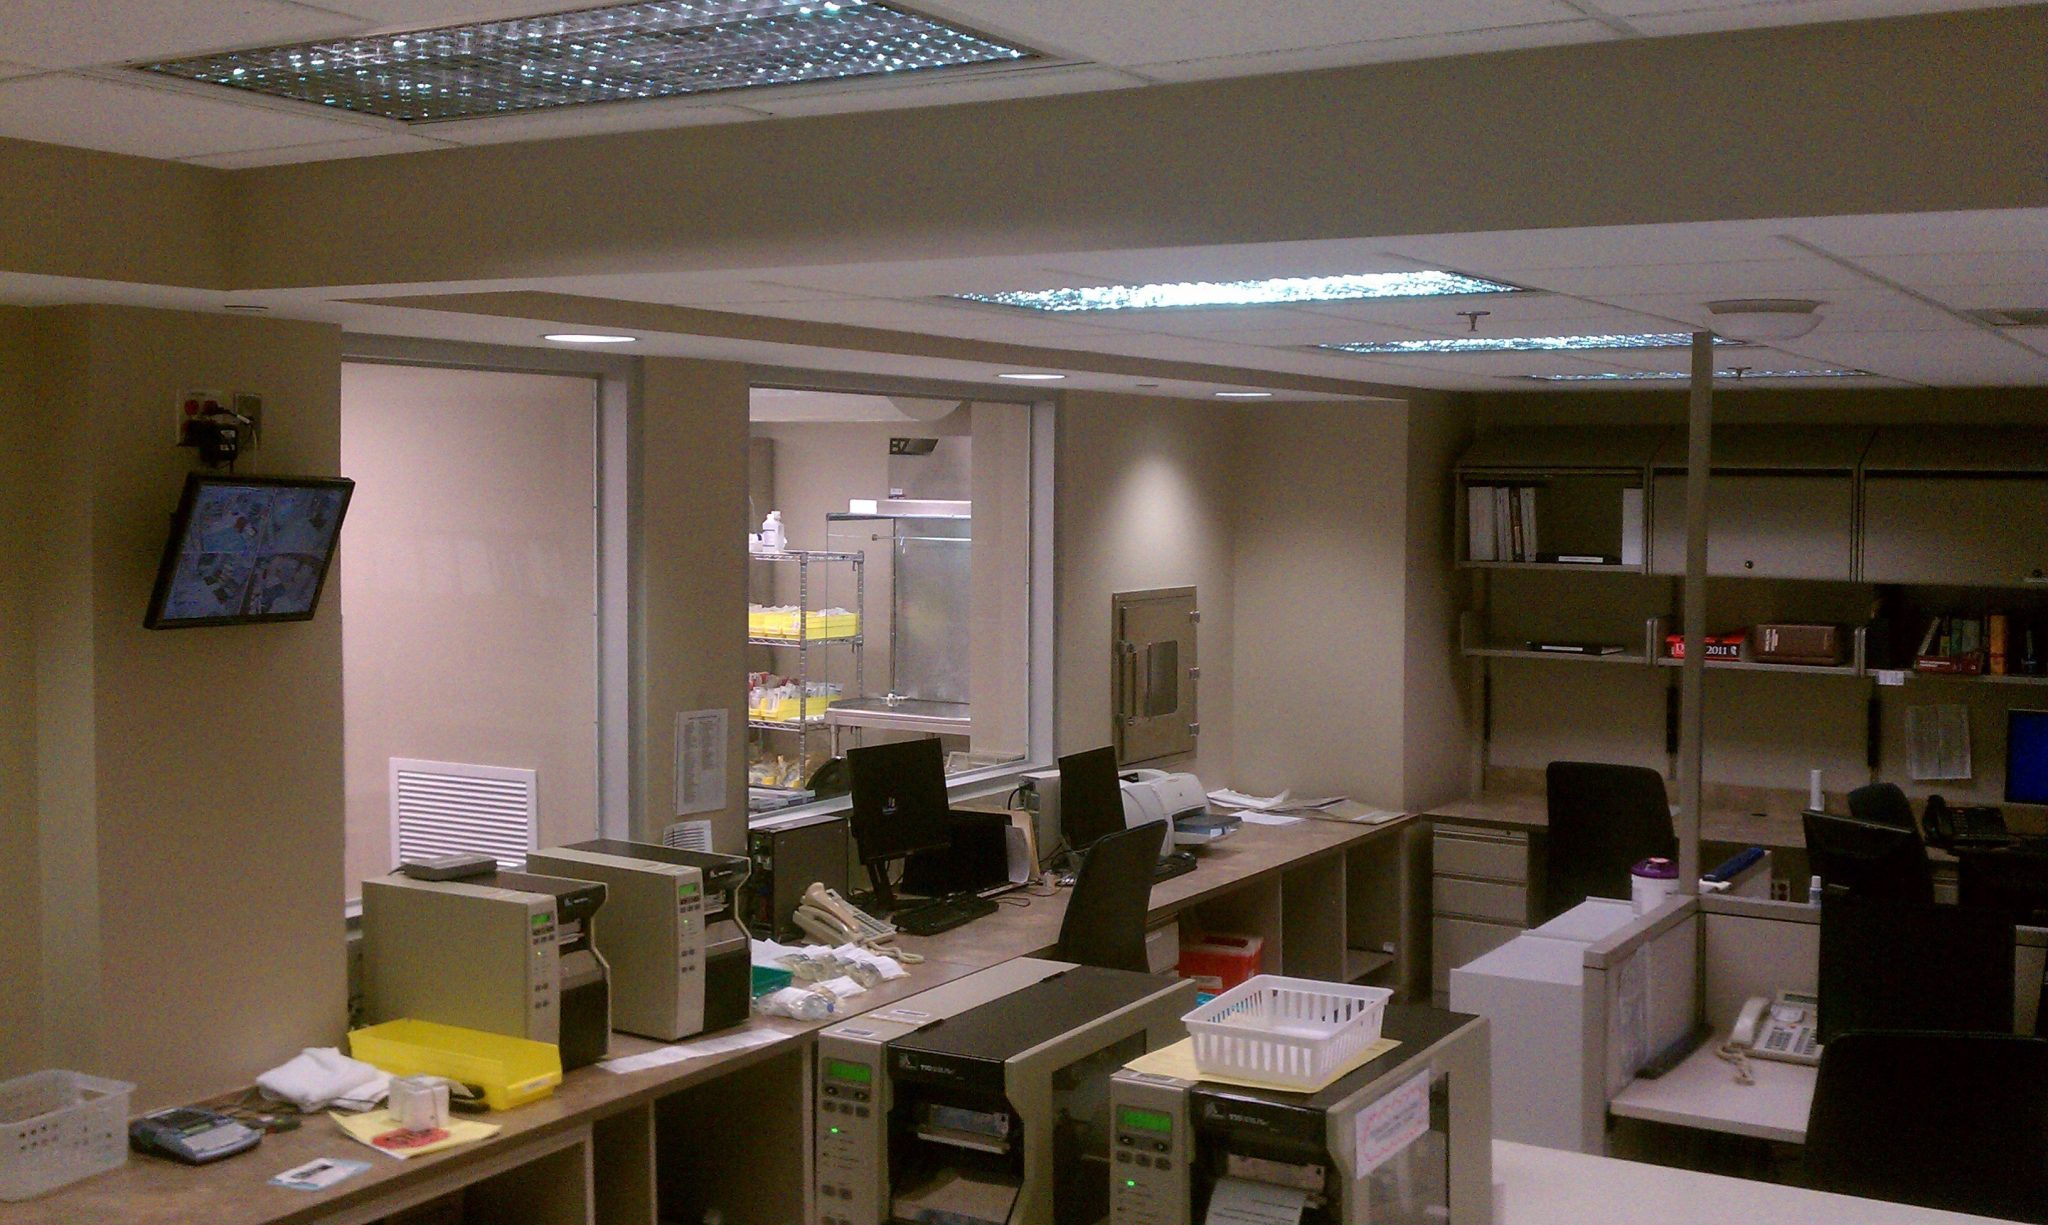 11Beaumont Hospital office interior with desks